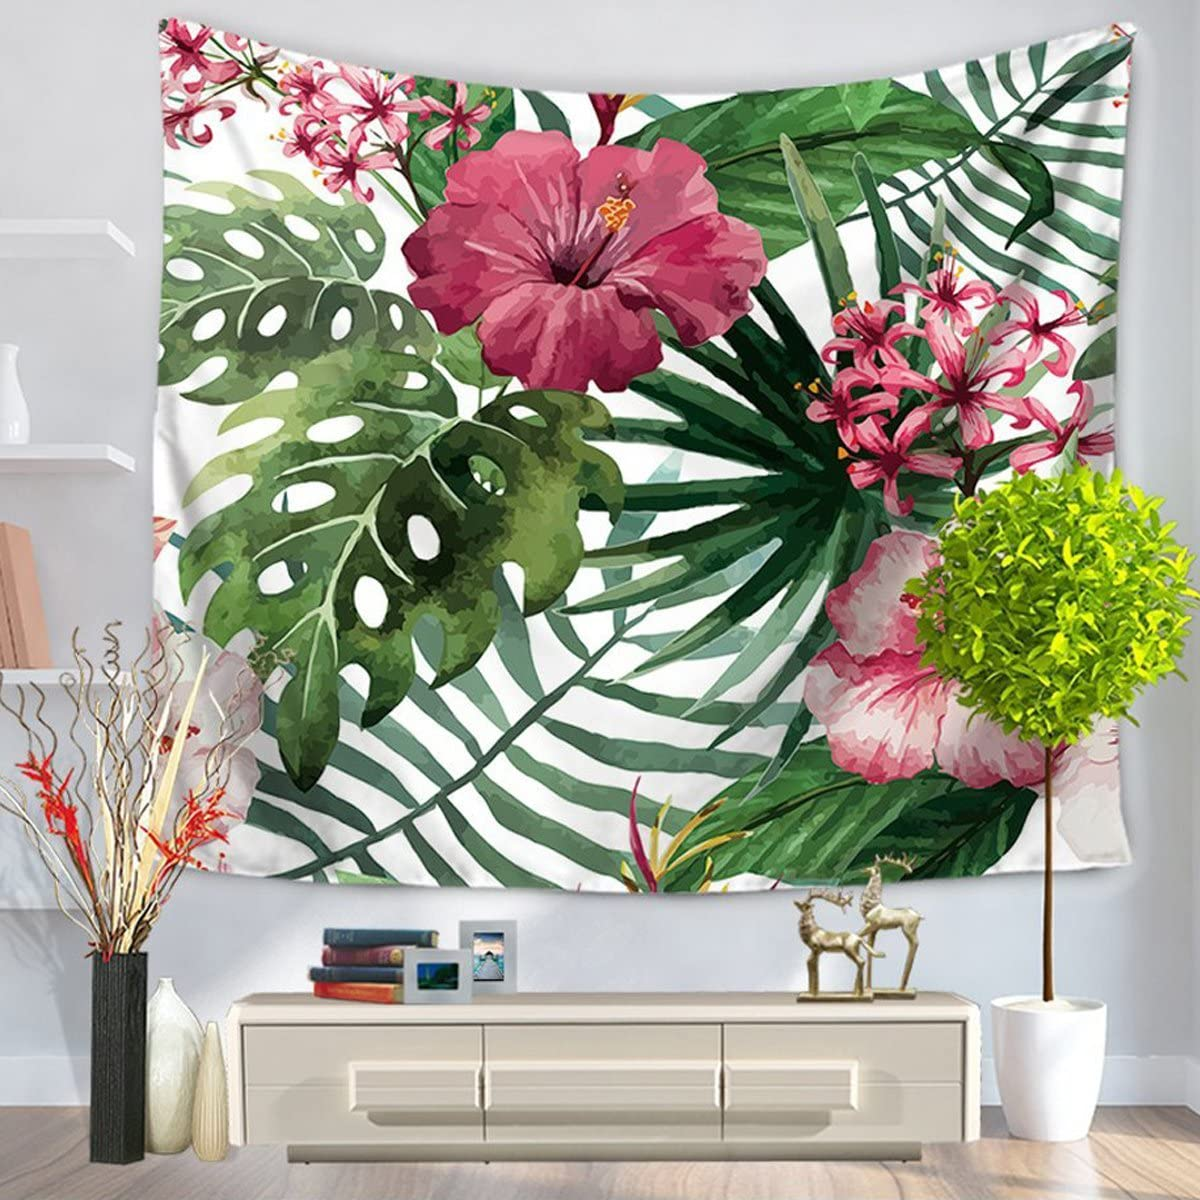 """Watercolor Flower Decor Tapestry Tropical Wild Orchid Flowers With Palm Leaves Print Exotic Style Nature Artwork, Bedroom Living Room Dorm Decor (60""""H x 80""""W, Leaf4)"""